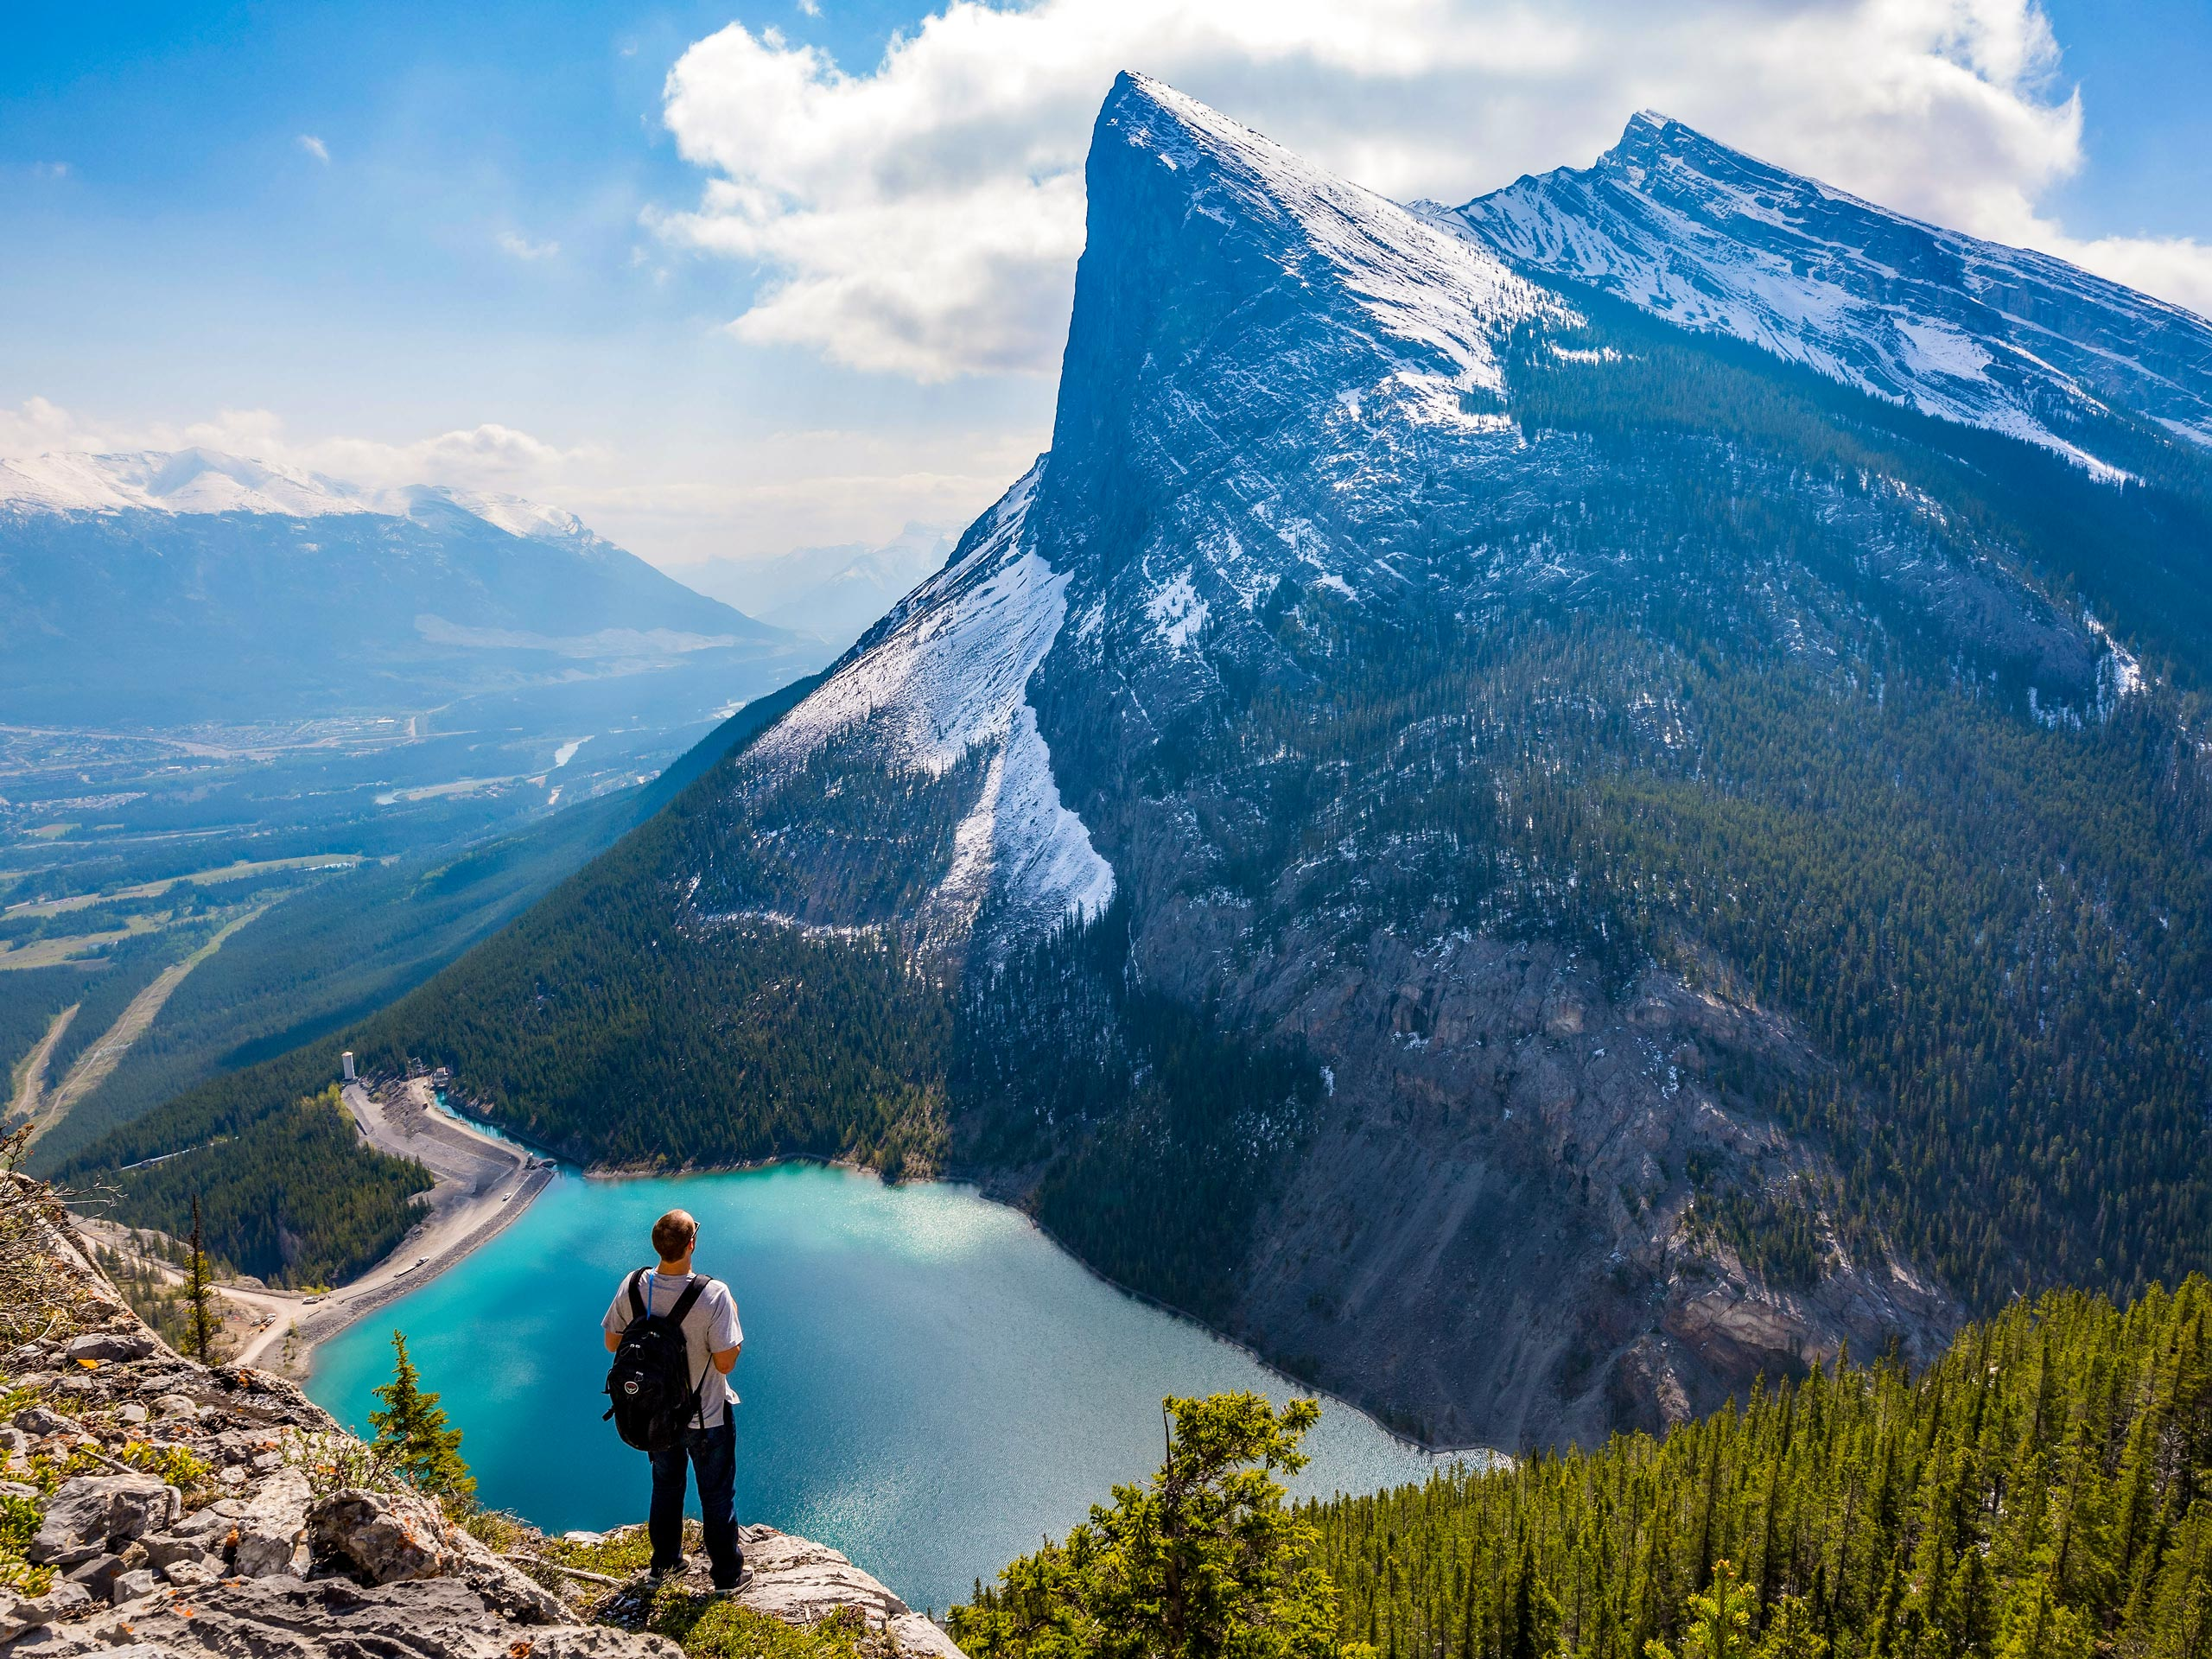 Hiking EEOR in Banff Canmore Alberta Canada